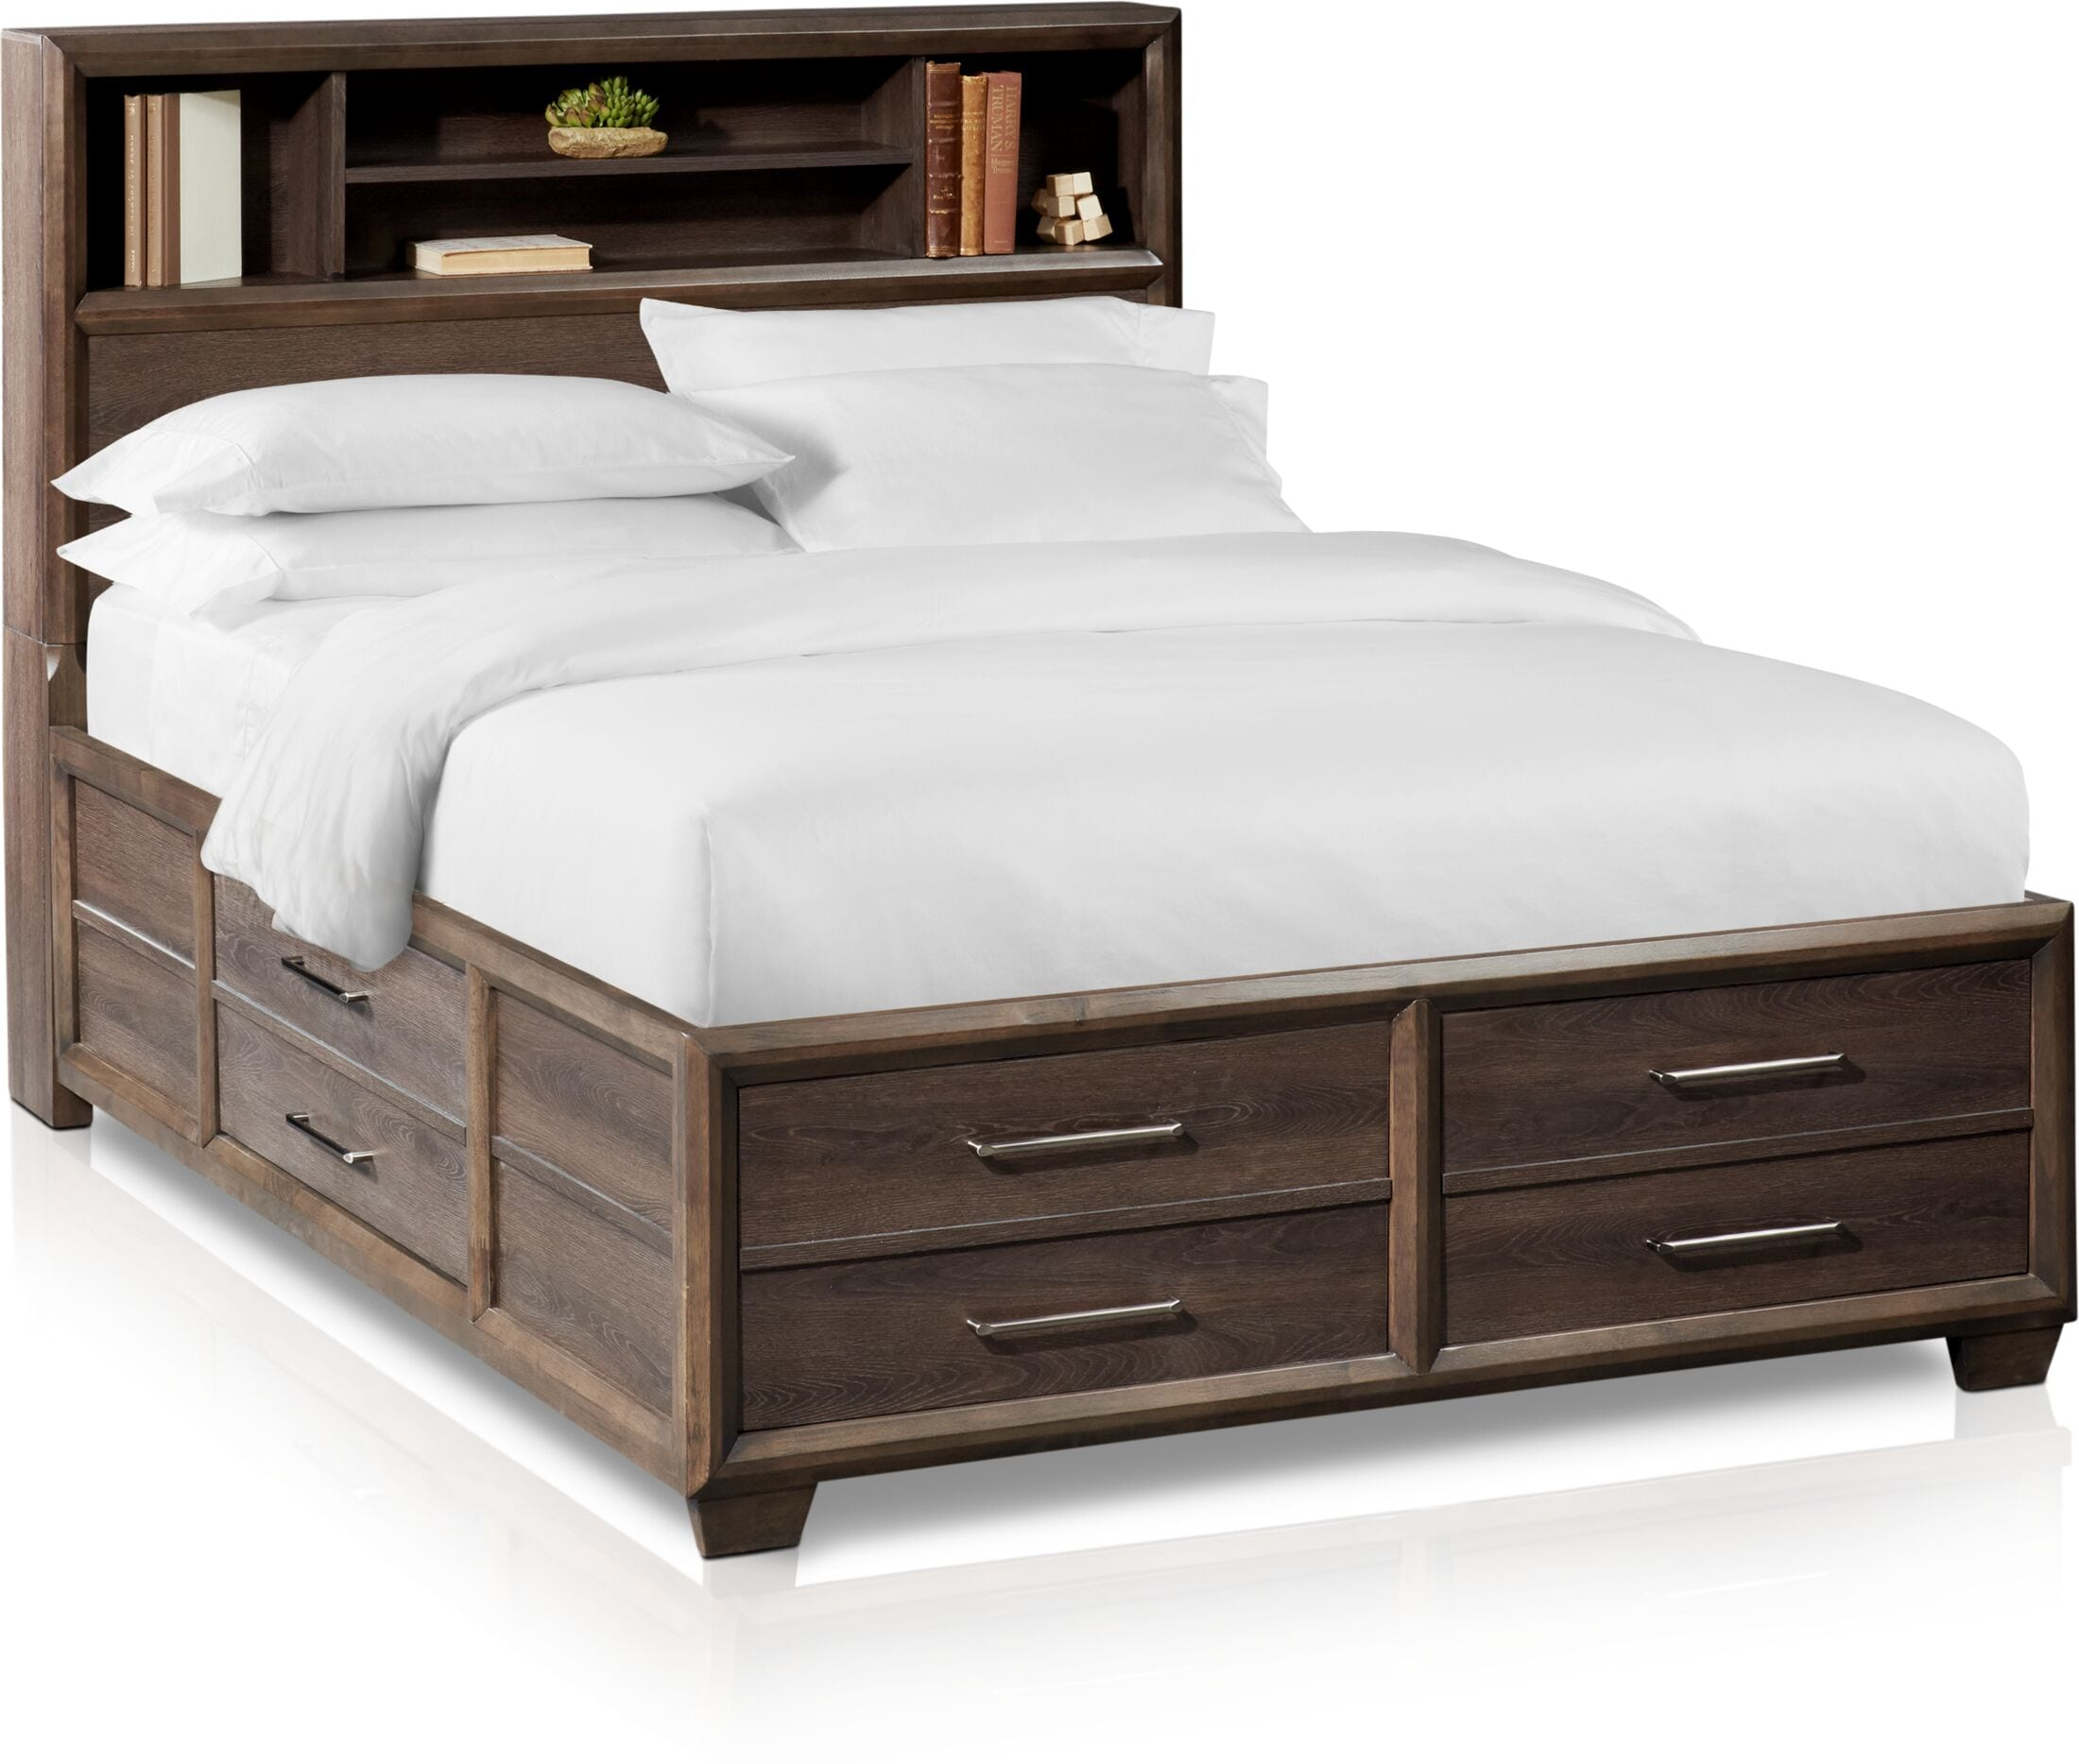 Bedroom Furniture - Dakota Bookcase Storage Bed